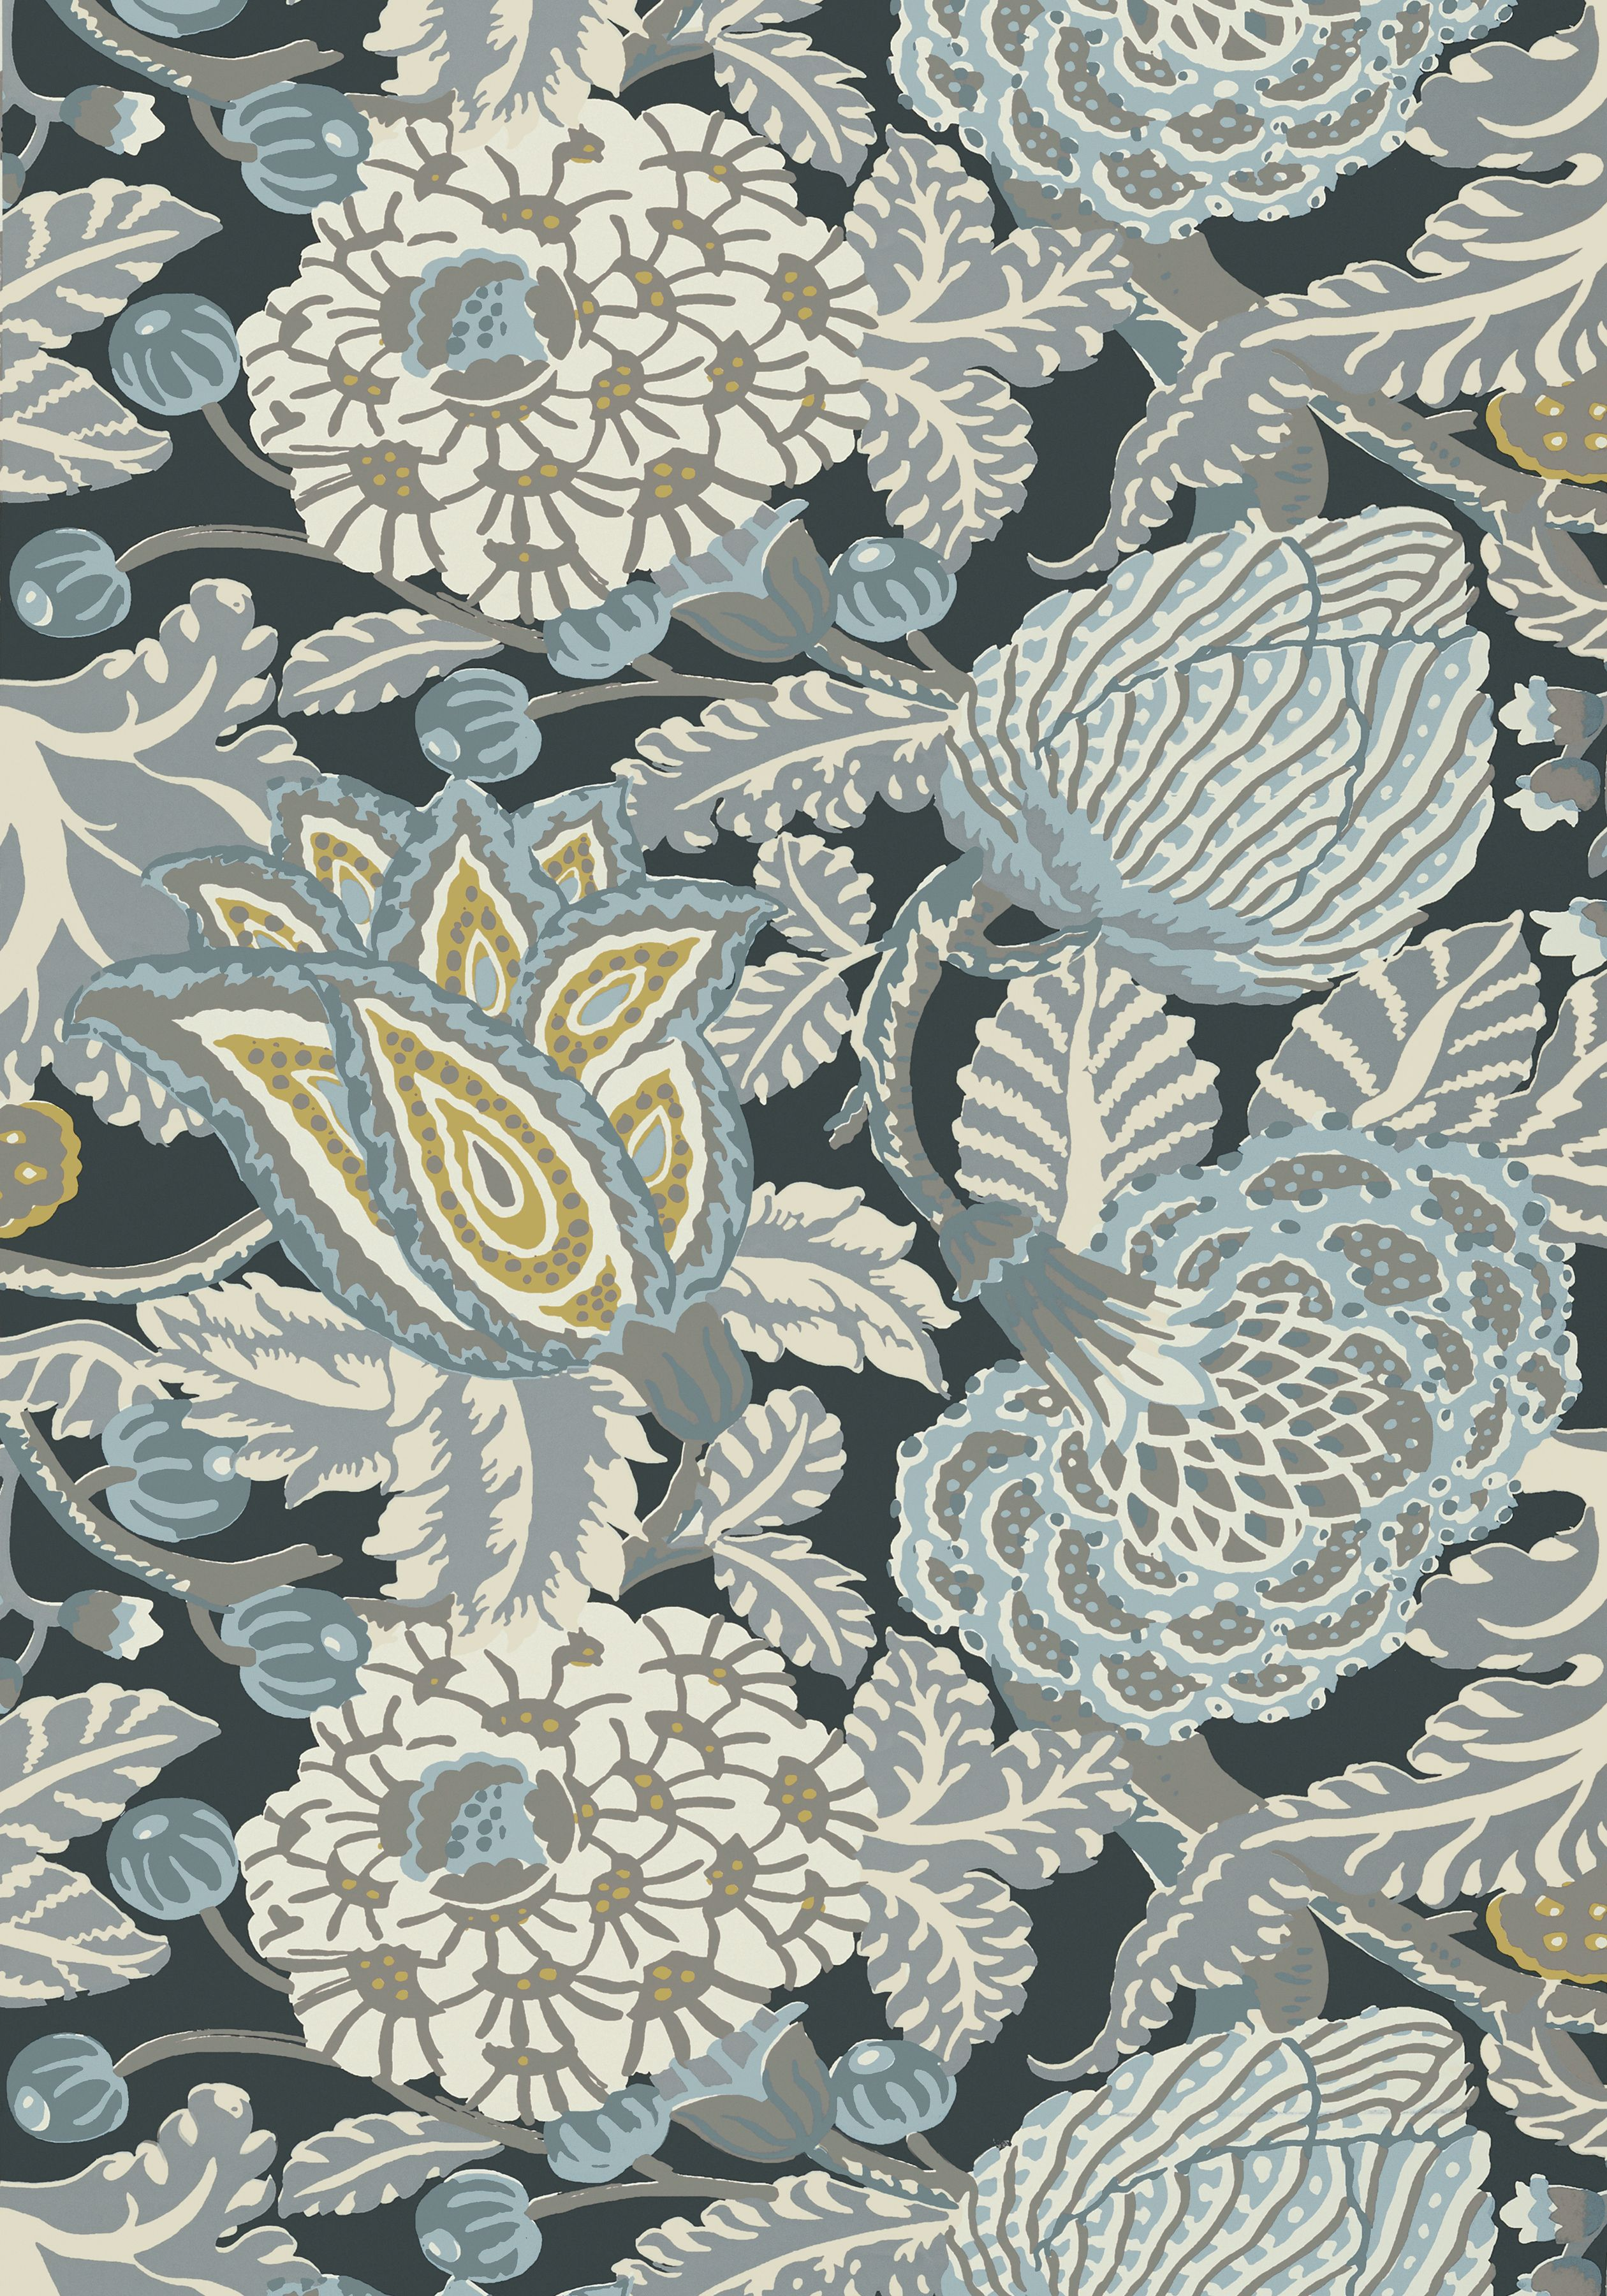 MITFORD, Grey, T2944, Collection Paramount from Thibaut